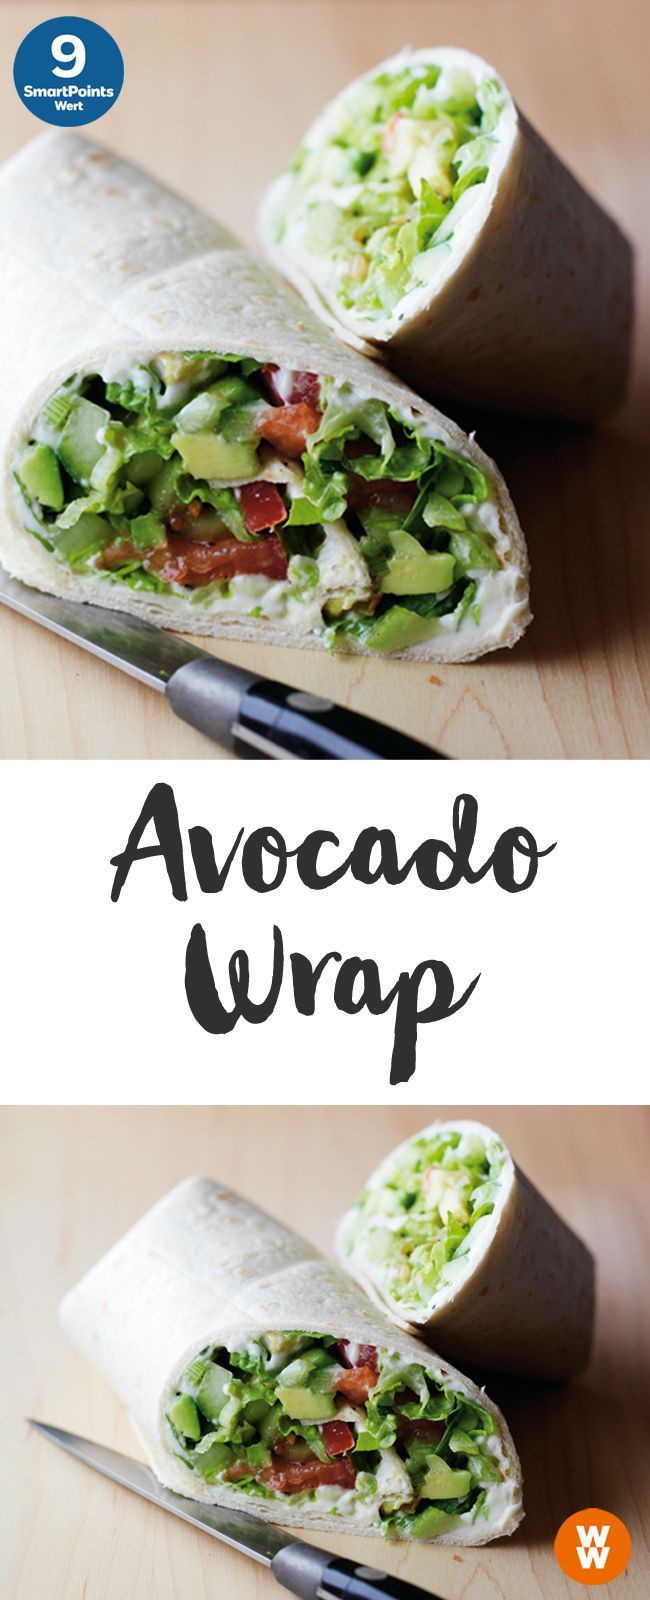 Avocado-Wrap mit Salsa | 2 Portionen, 9 SmartPoints/Portion, Weight Watchers, fertig in 10 min.